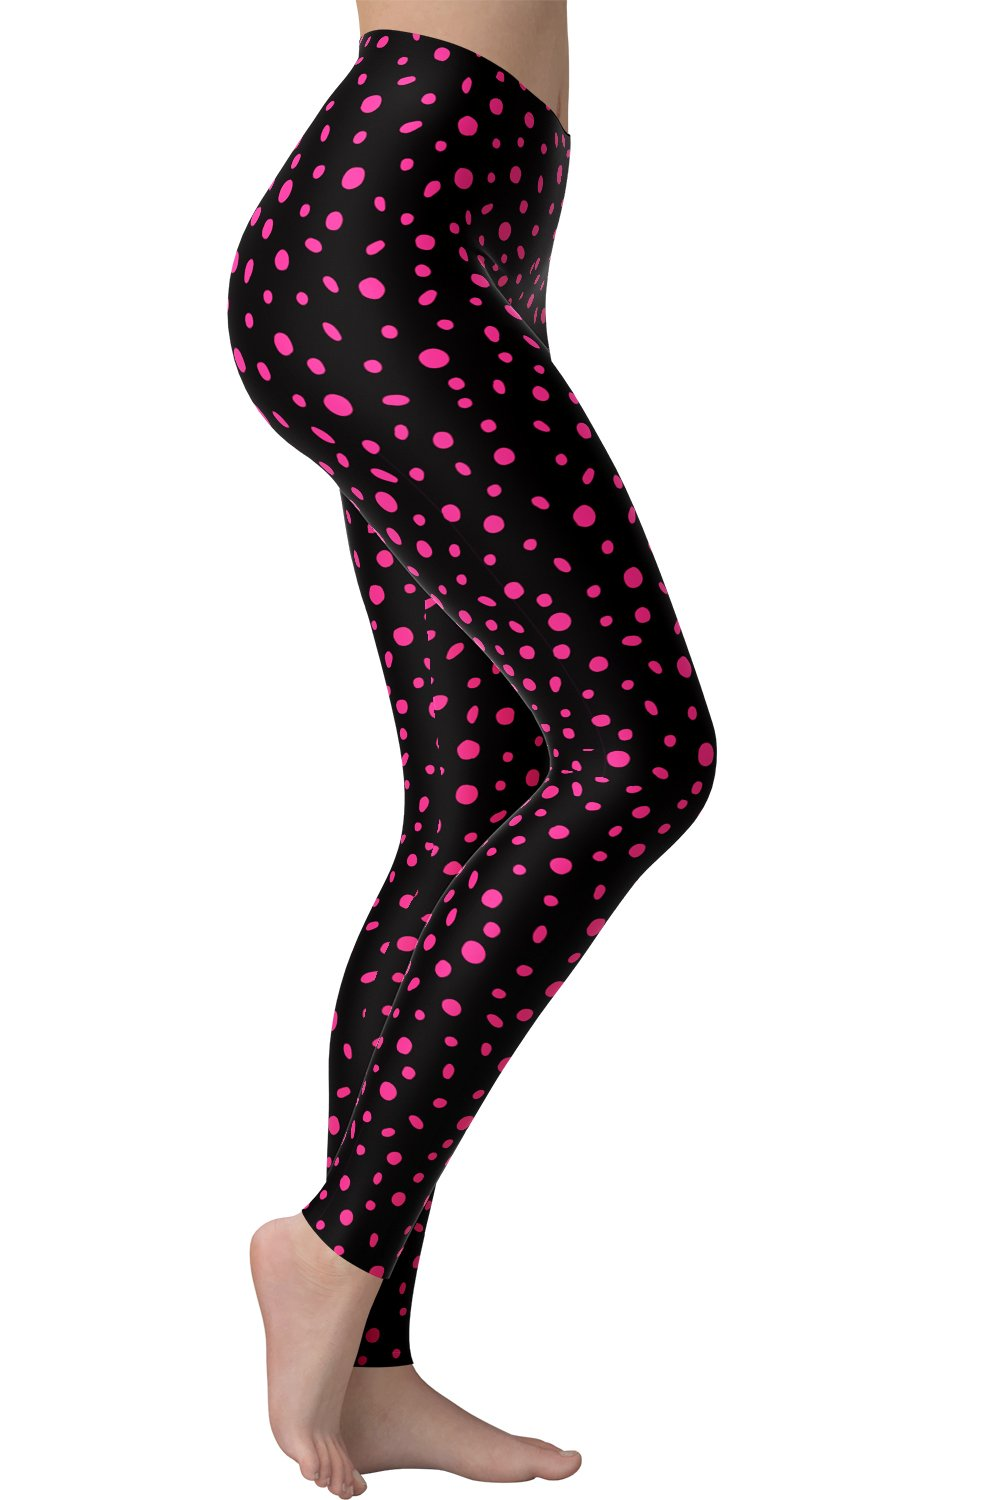 Printed Brushed Leggings - Hot Pink Polka Dot Frenzy